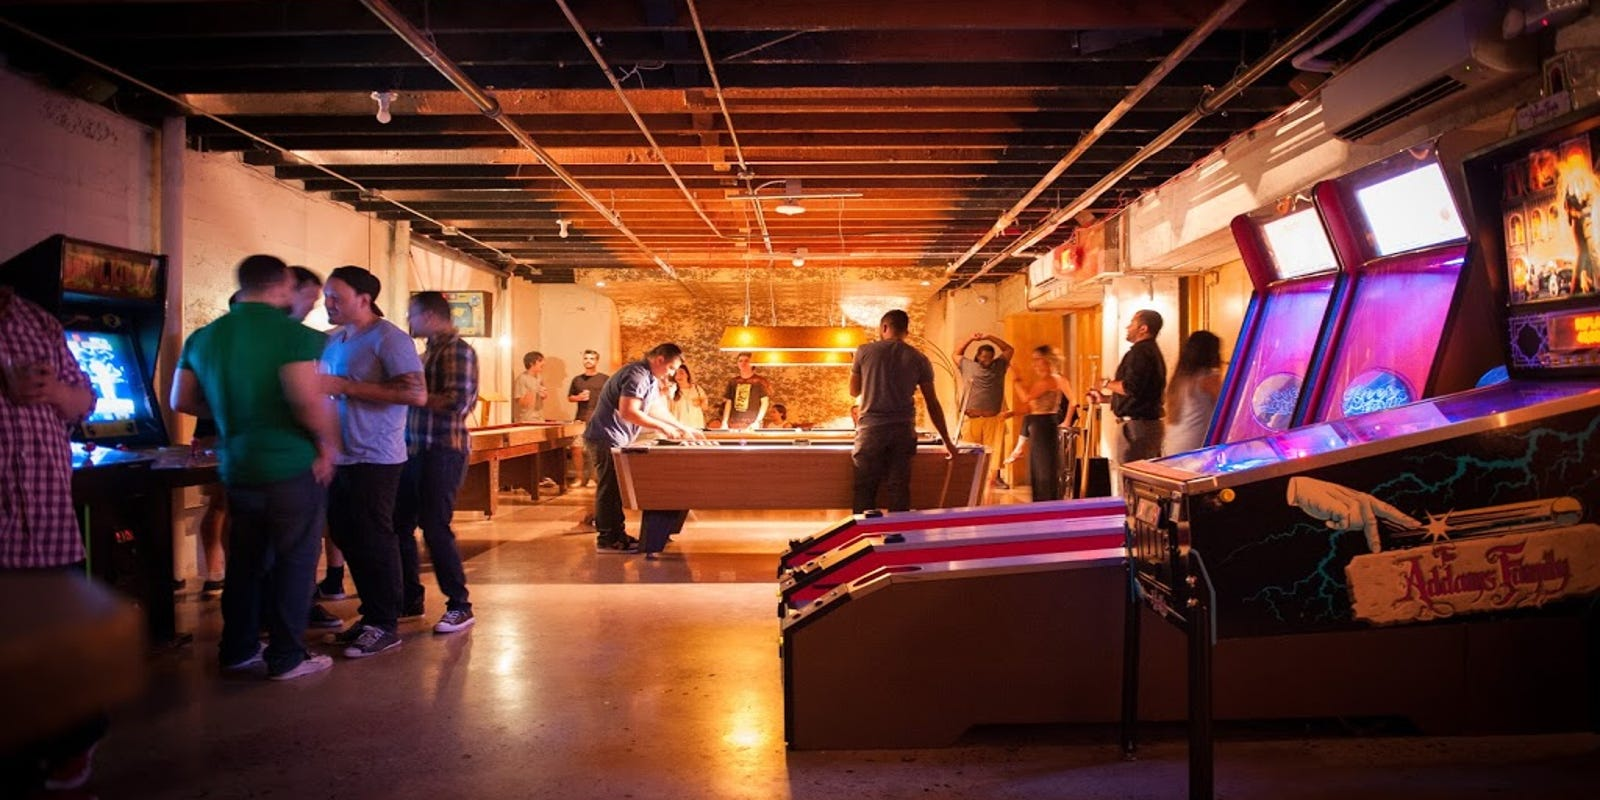 11 best underground, speakeasy bars in Phoenix